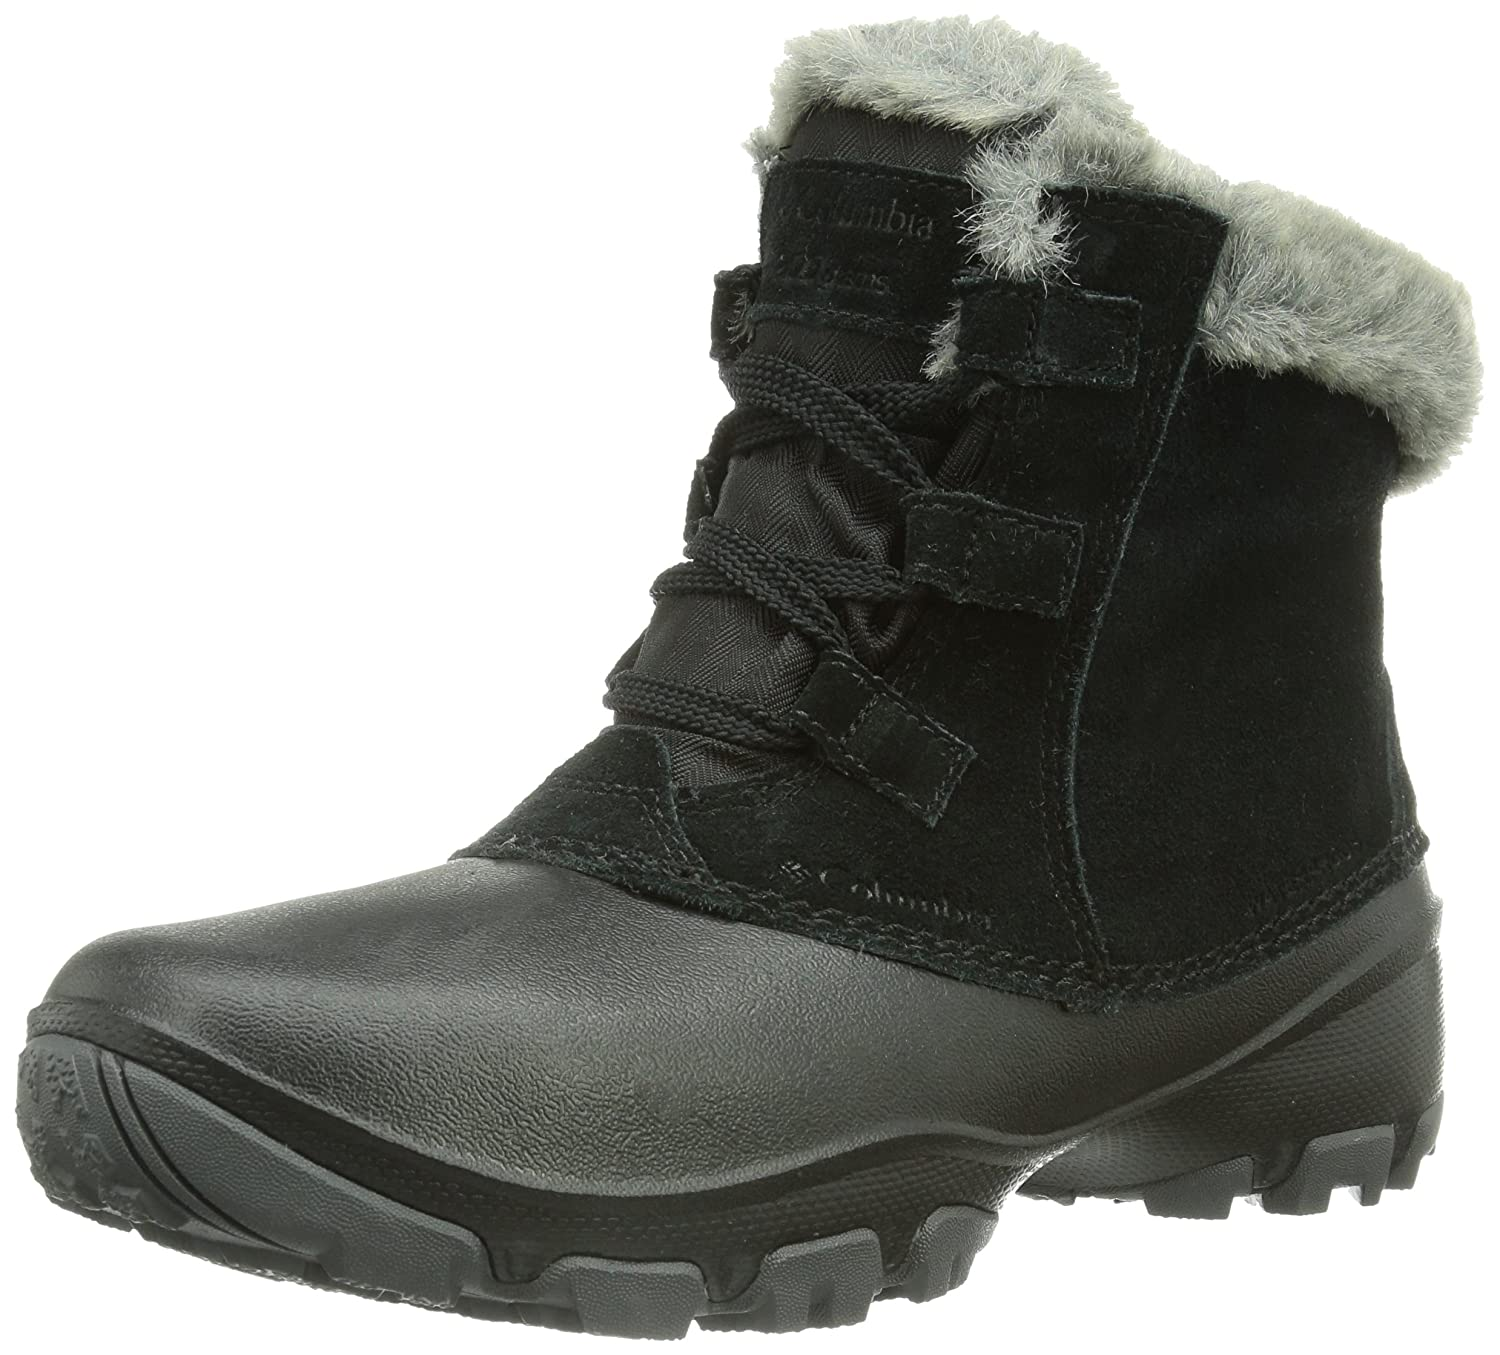 Columbia Women's Sierra Summette Shorty Winter Boot B00GW95YO0 9.5 B(M) US|Black, Red Plum